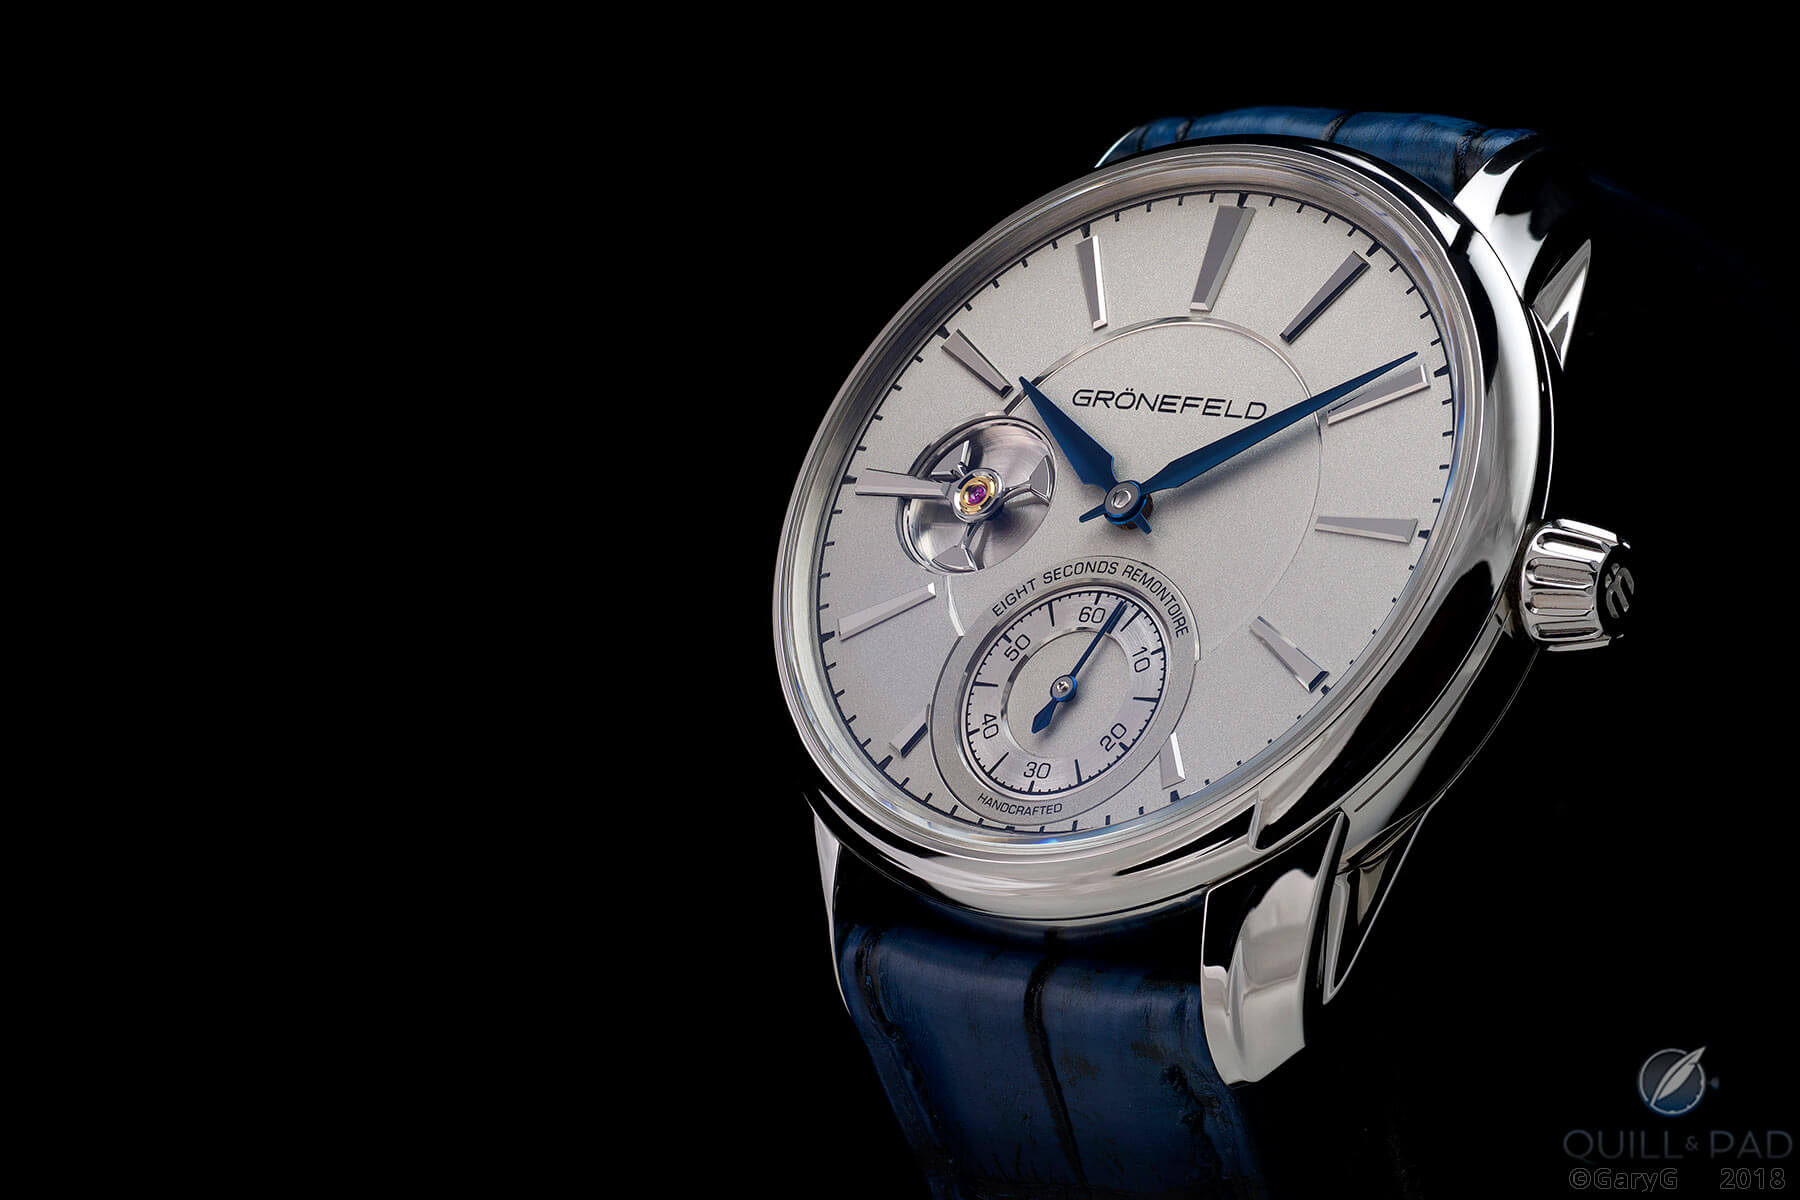 The Grönefeld 1941 Remontoire in stainless steel